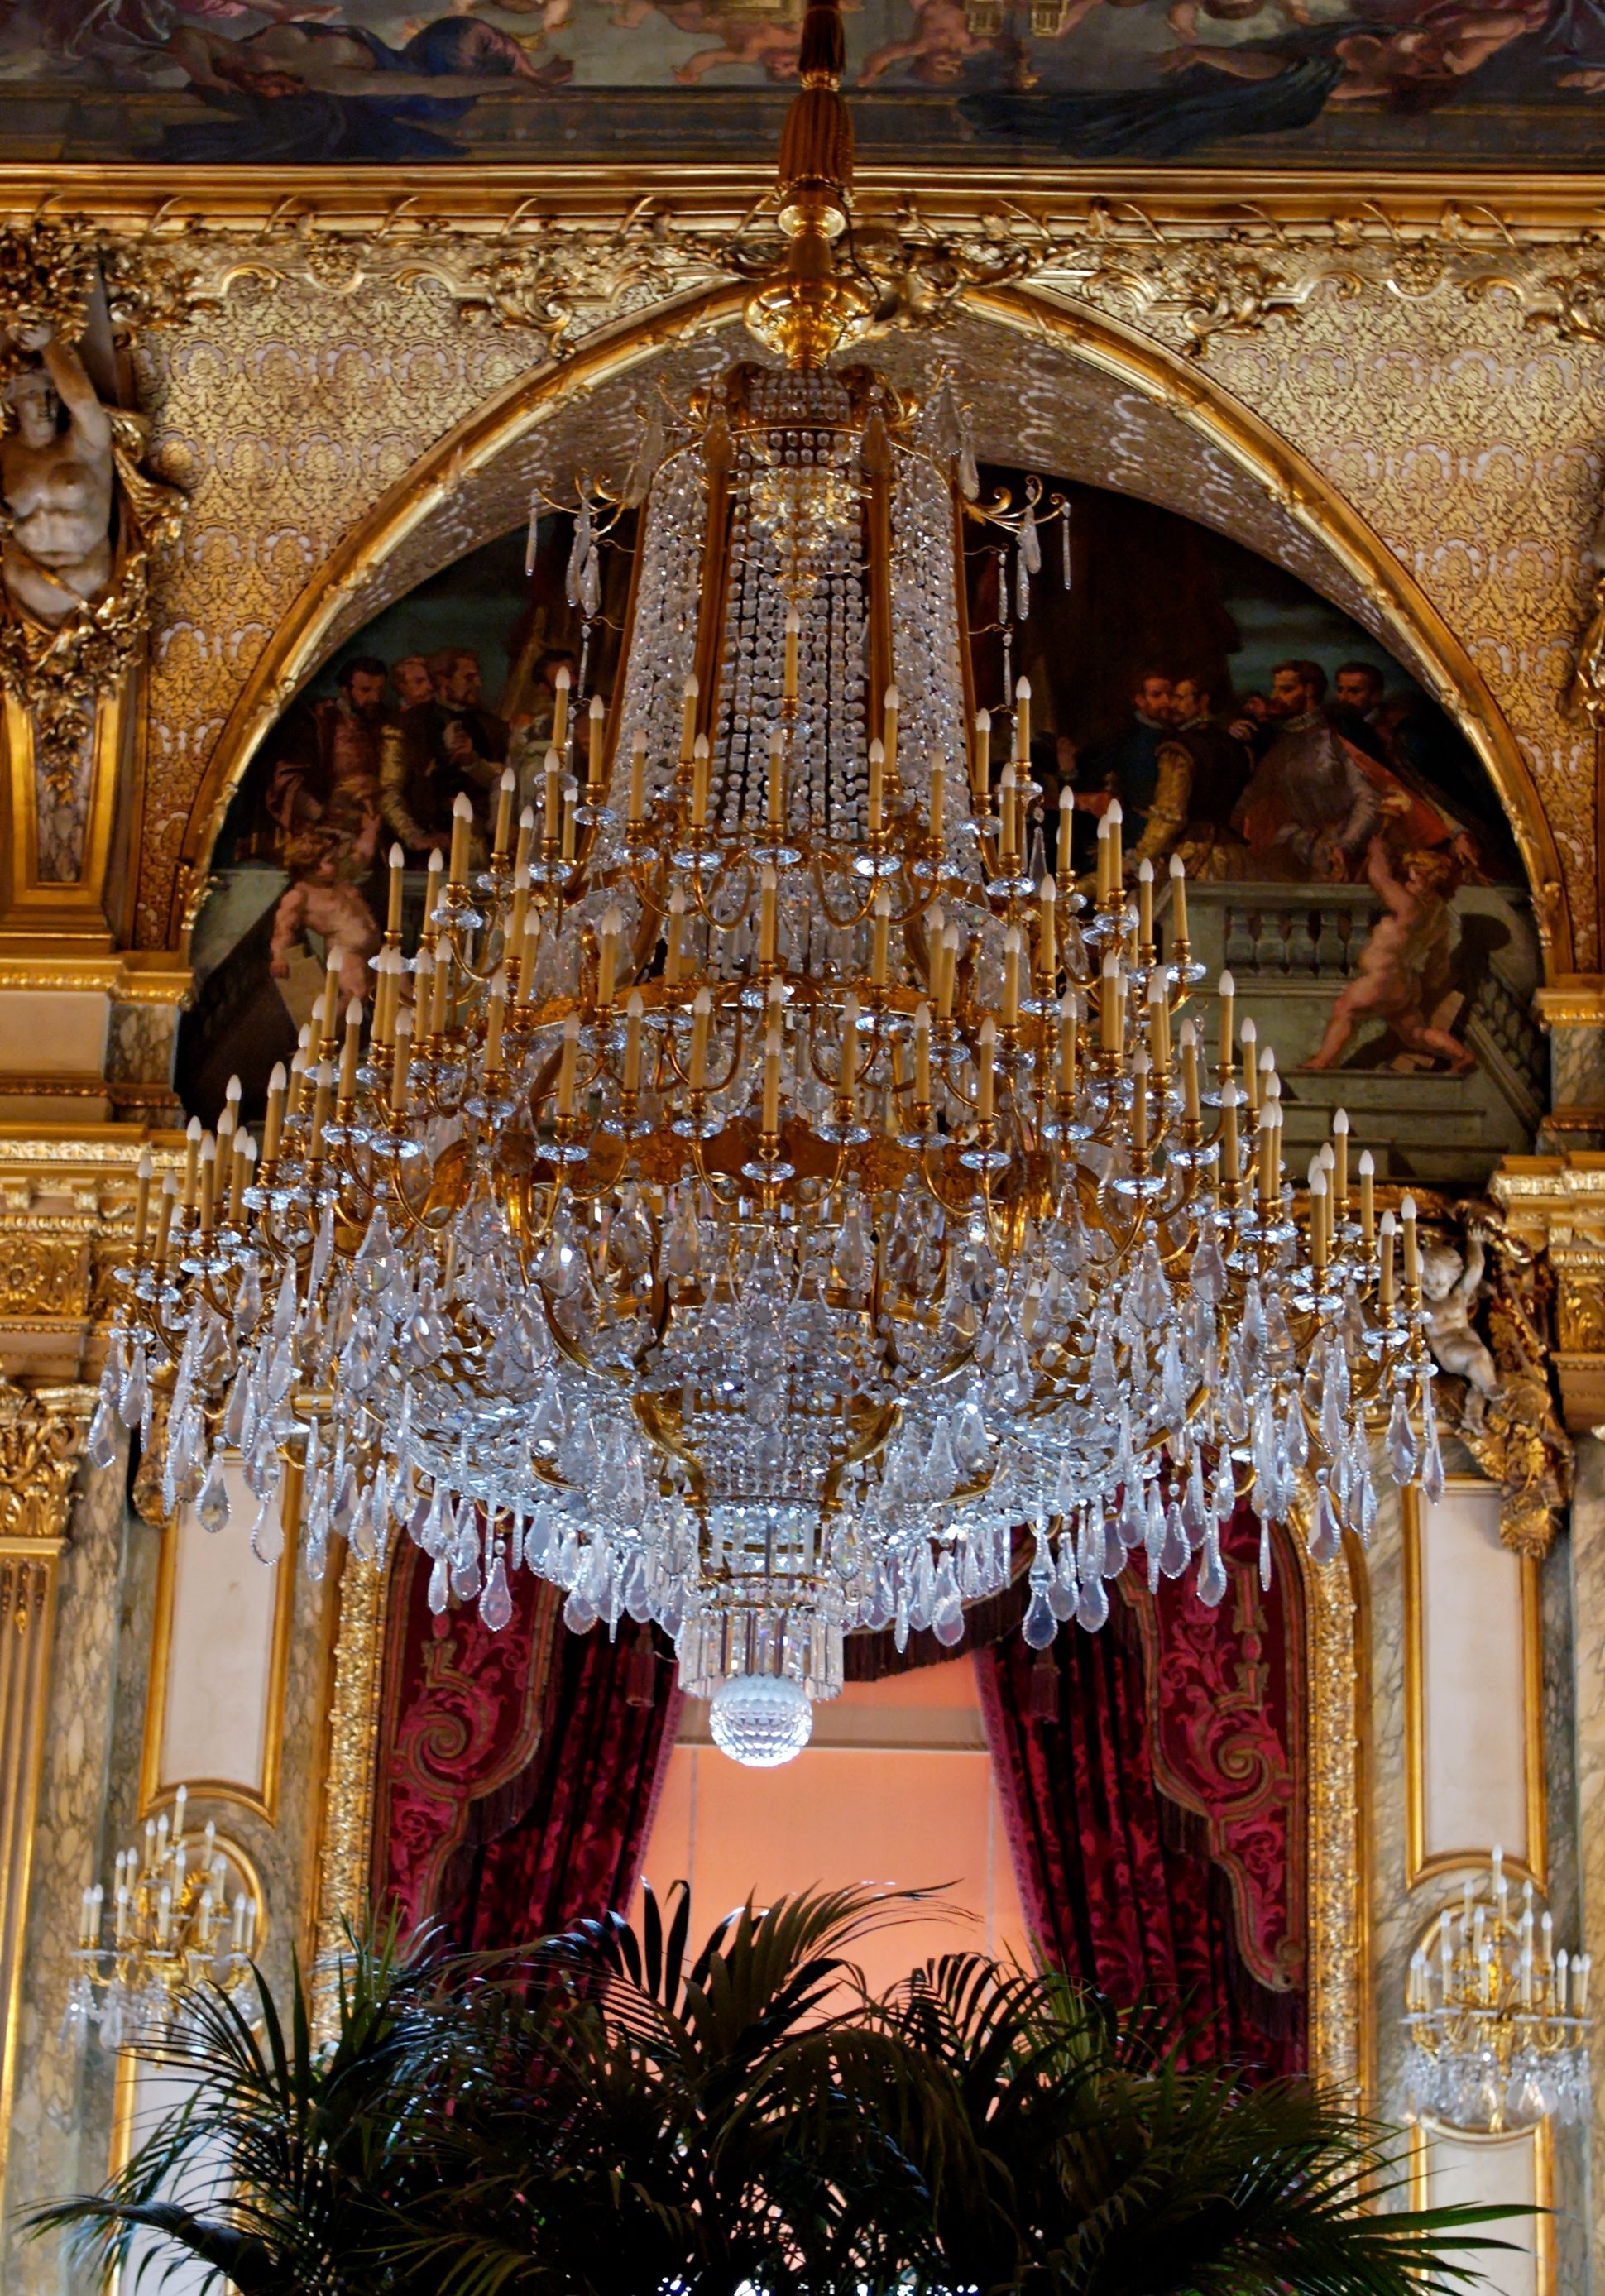 Central Chandelier Of The Grand Salon Louvre Hector Lefuel